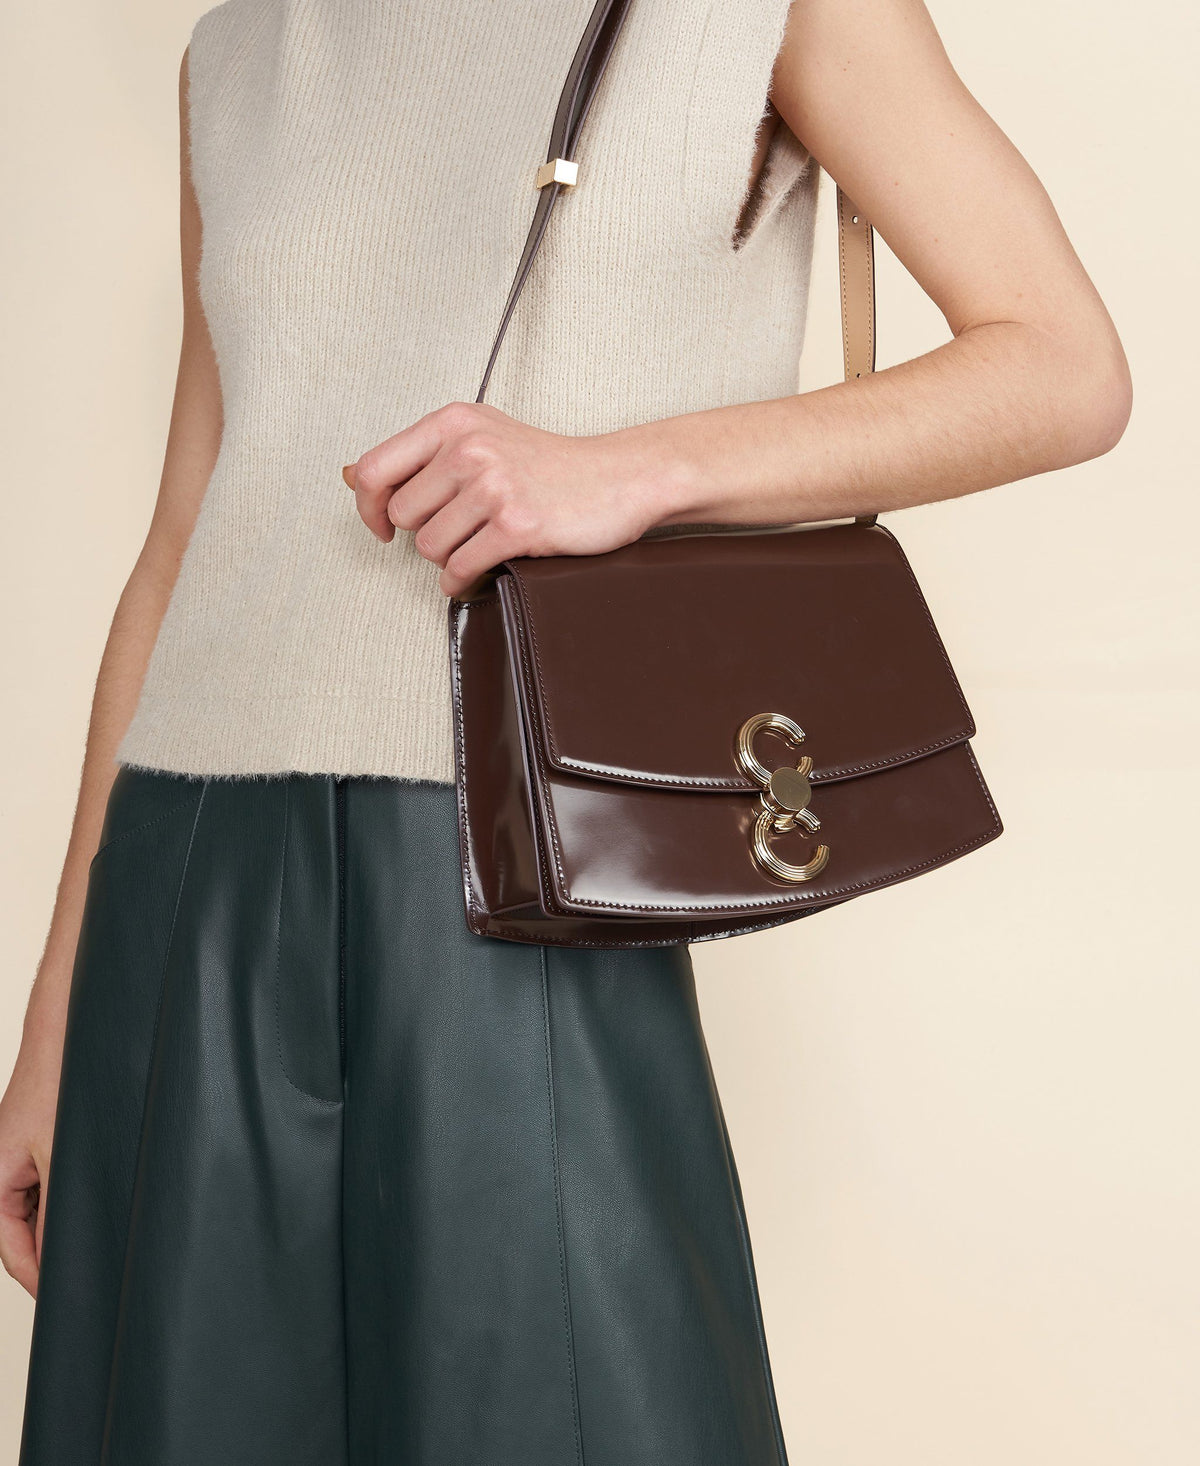 Cafuné Pendulum Bag in Walnut